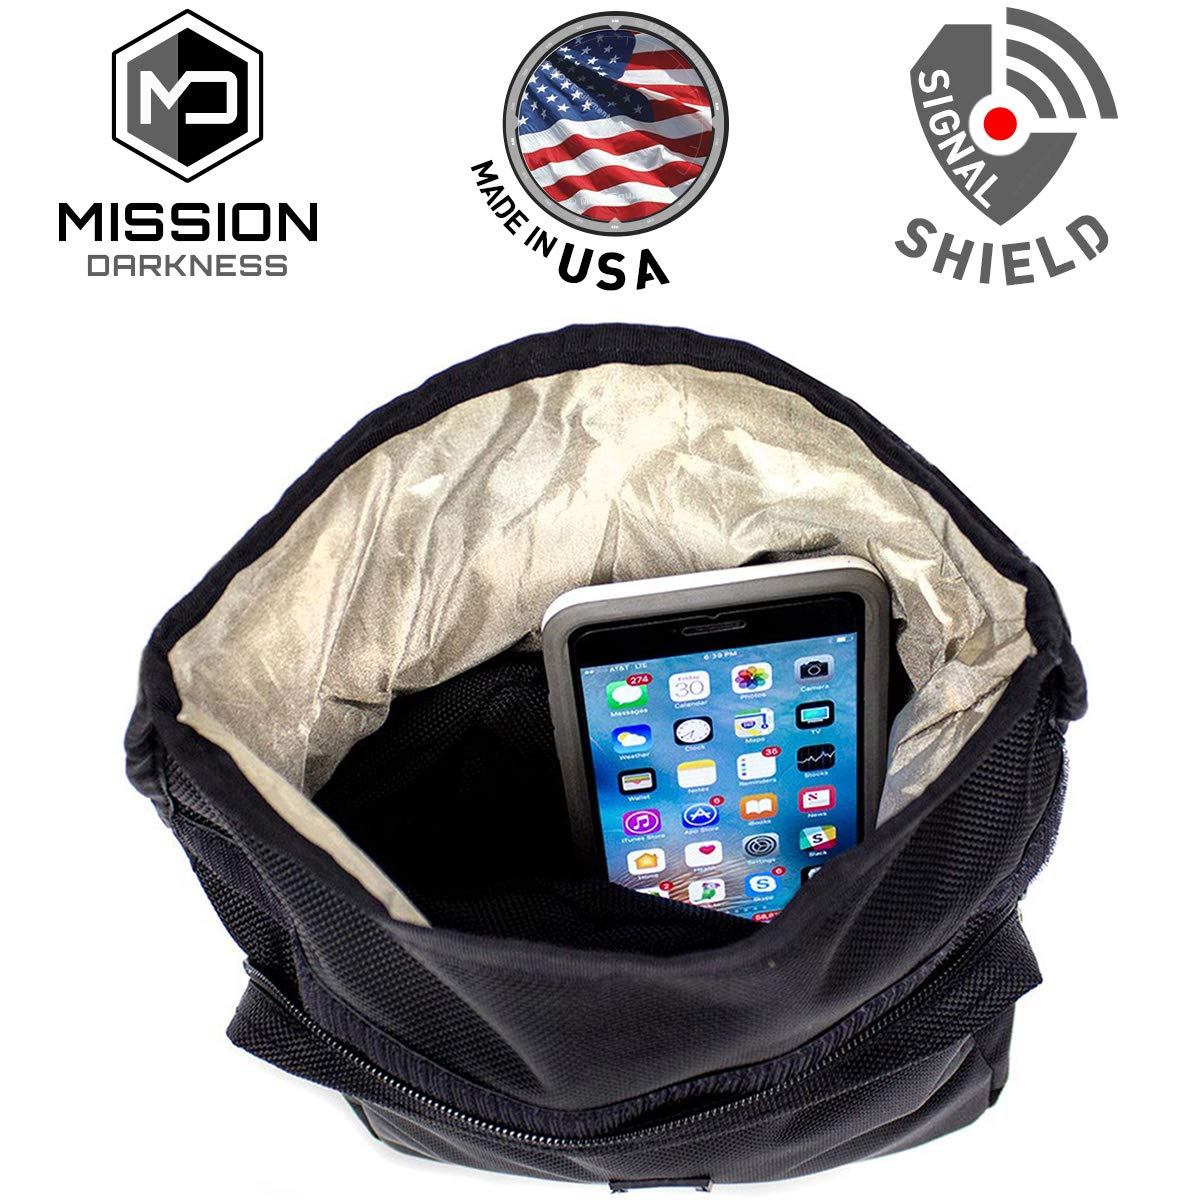 Mission Darkness MOLLE Faraday Pouch - for Law Enforcement and Military. Attaches to Any Bag with MOLLE Webbing. Signal Blocking/Anti-Tracking/Data Privacy for Phones, Tablets, and Other Devices by Mission Darkness